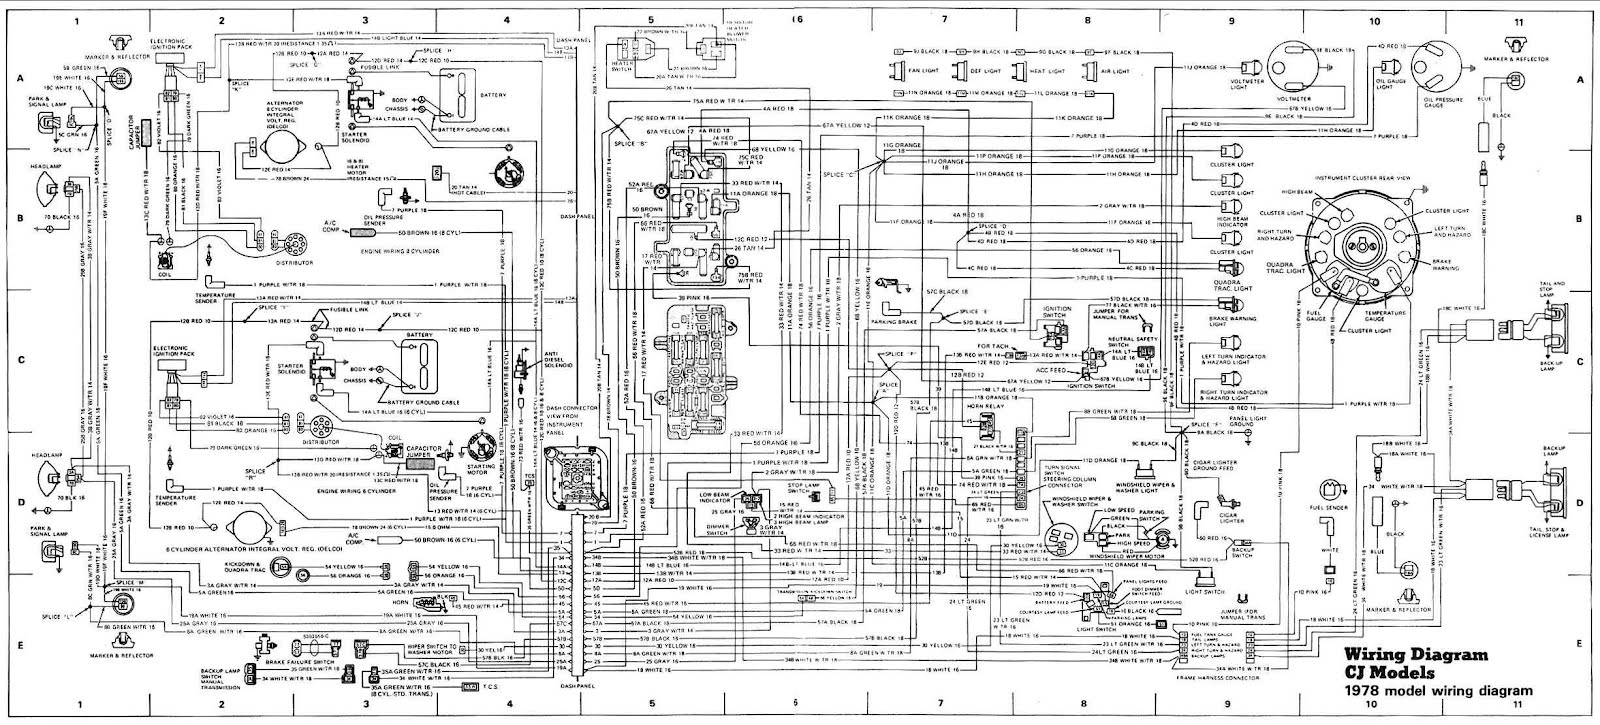 Admirable Wrg 2199 2003 Jeep Liberty Engine Diagram Wiring Cloud Waroletkolfr09Org